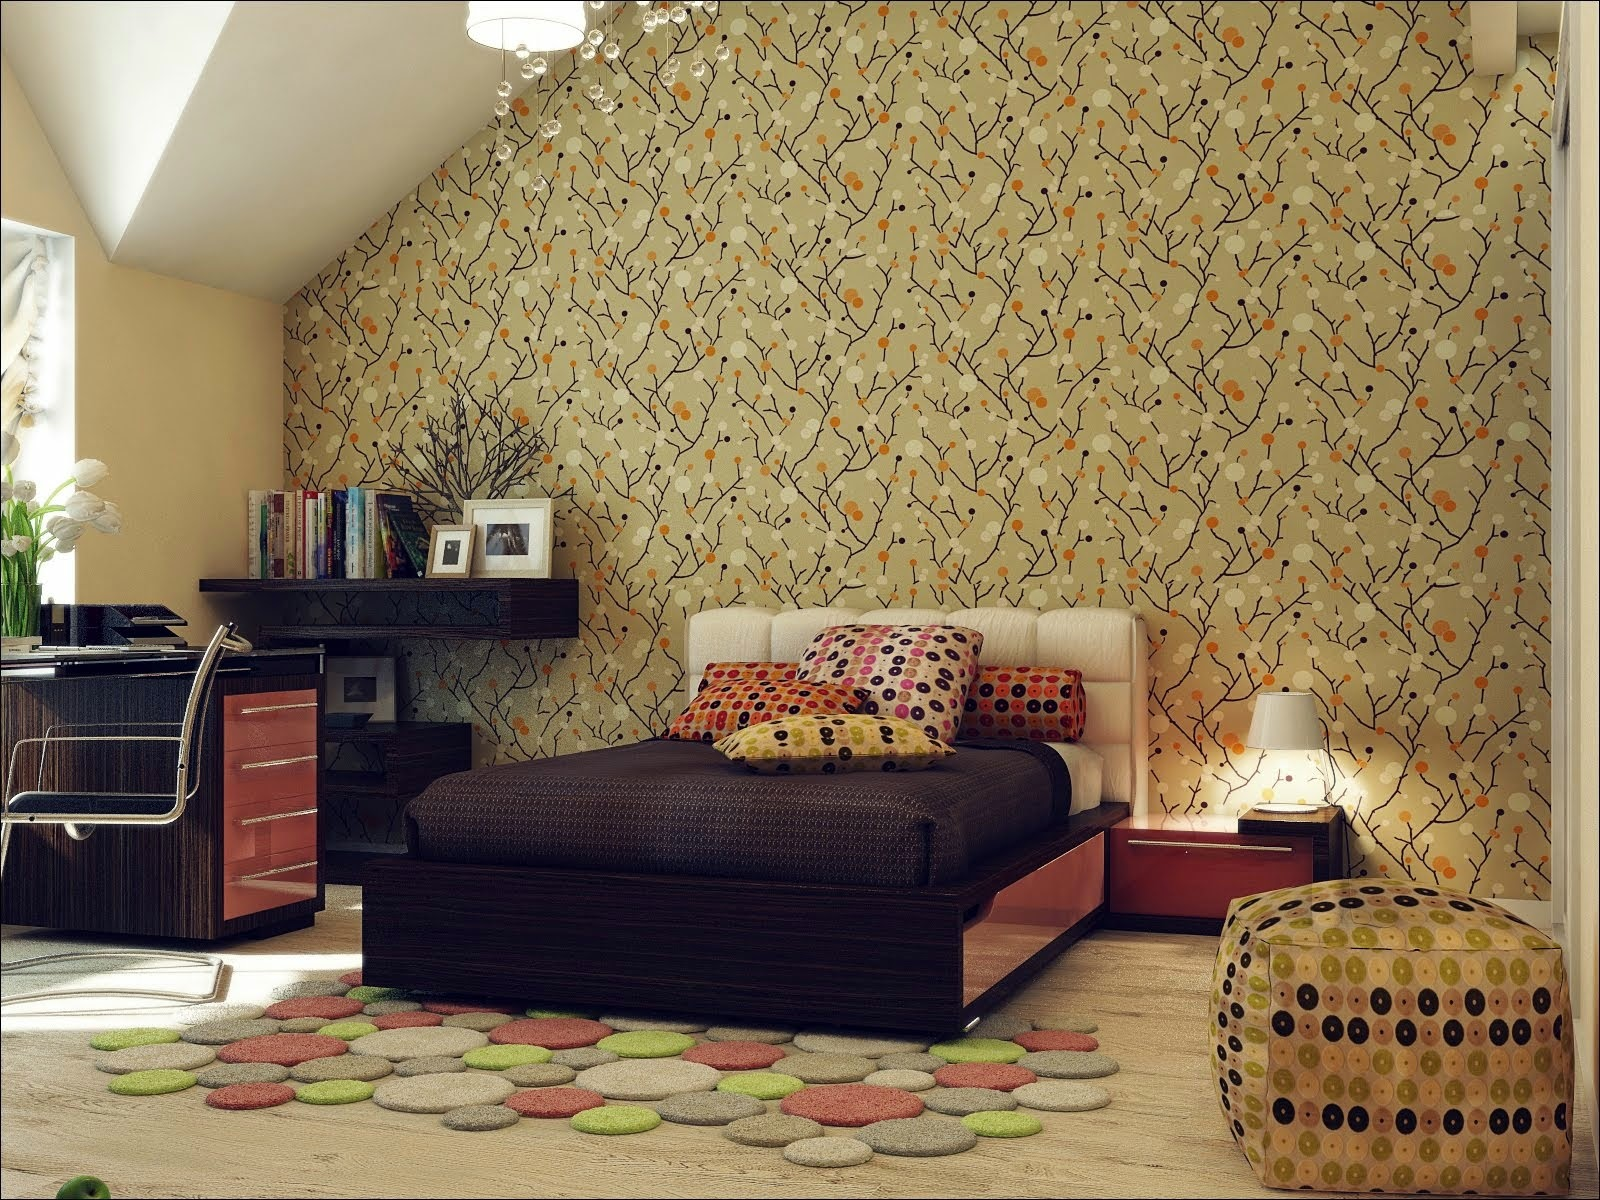 Wallpaper Room Decor photo - 7